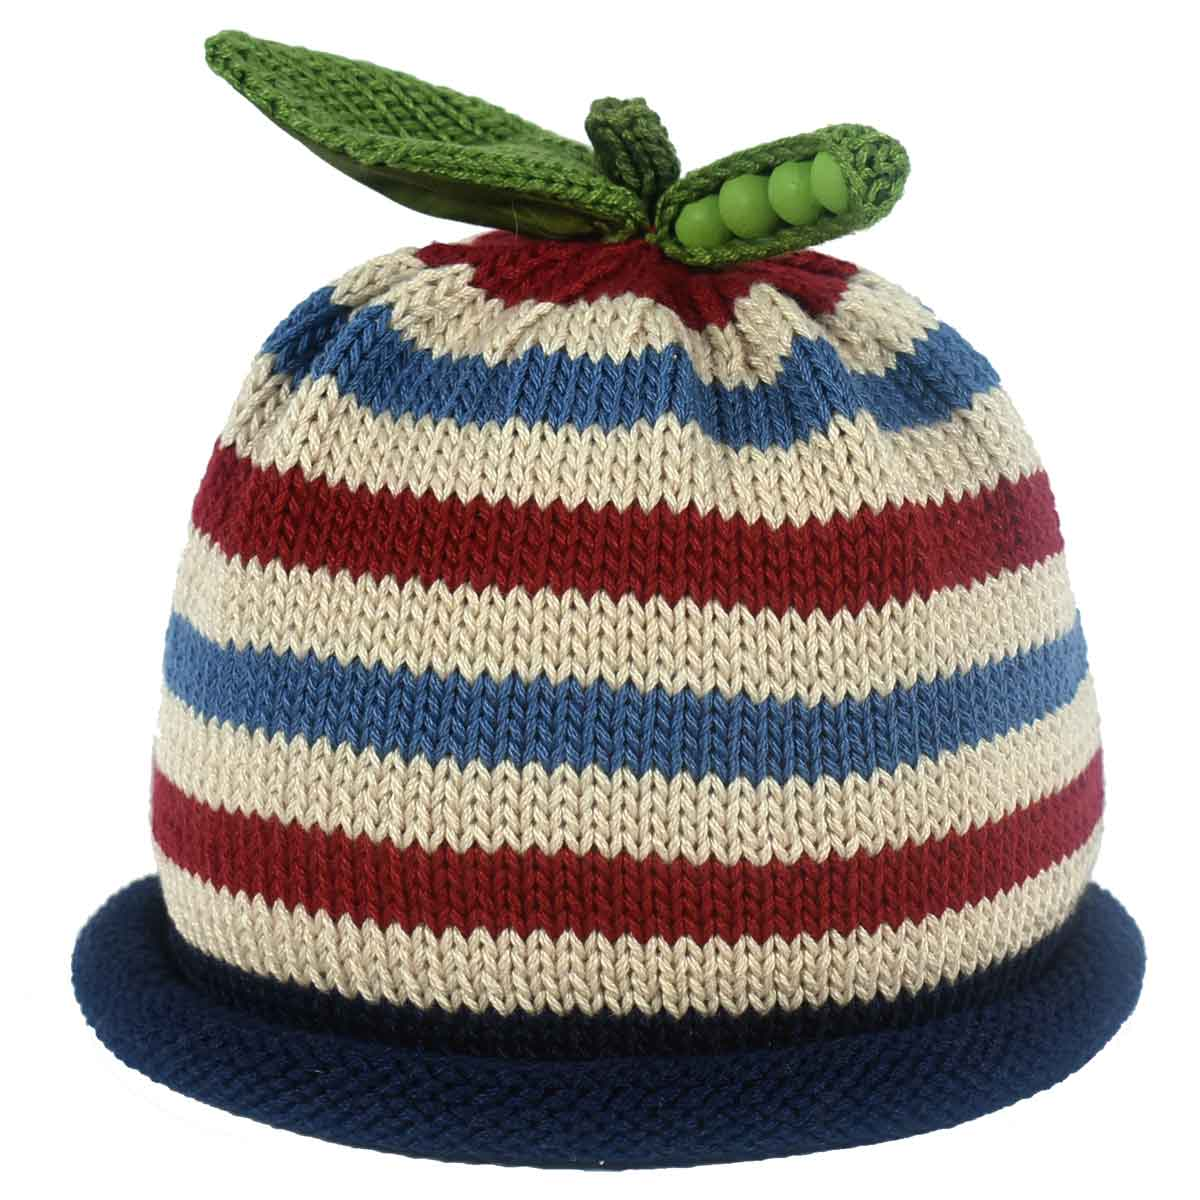 c3a408b5b Sweet Pea Knit Hats - Striped Collection